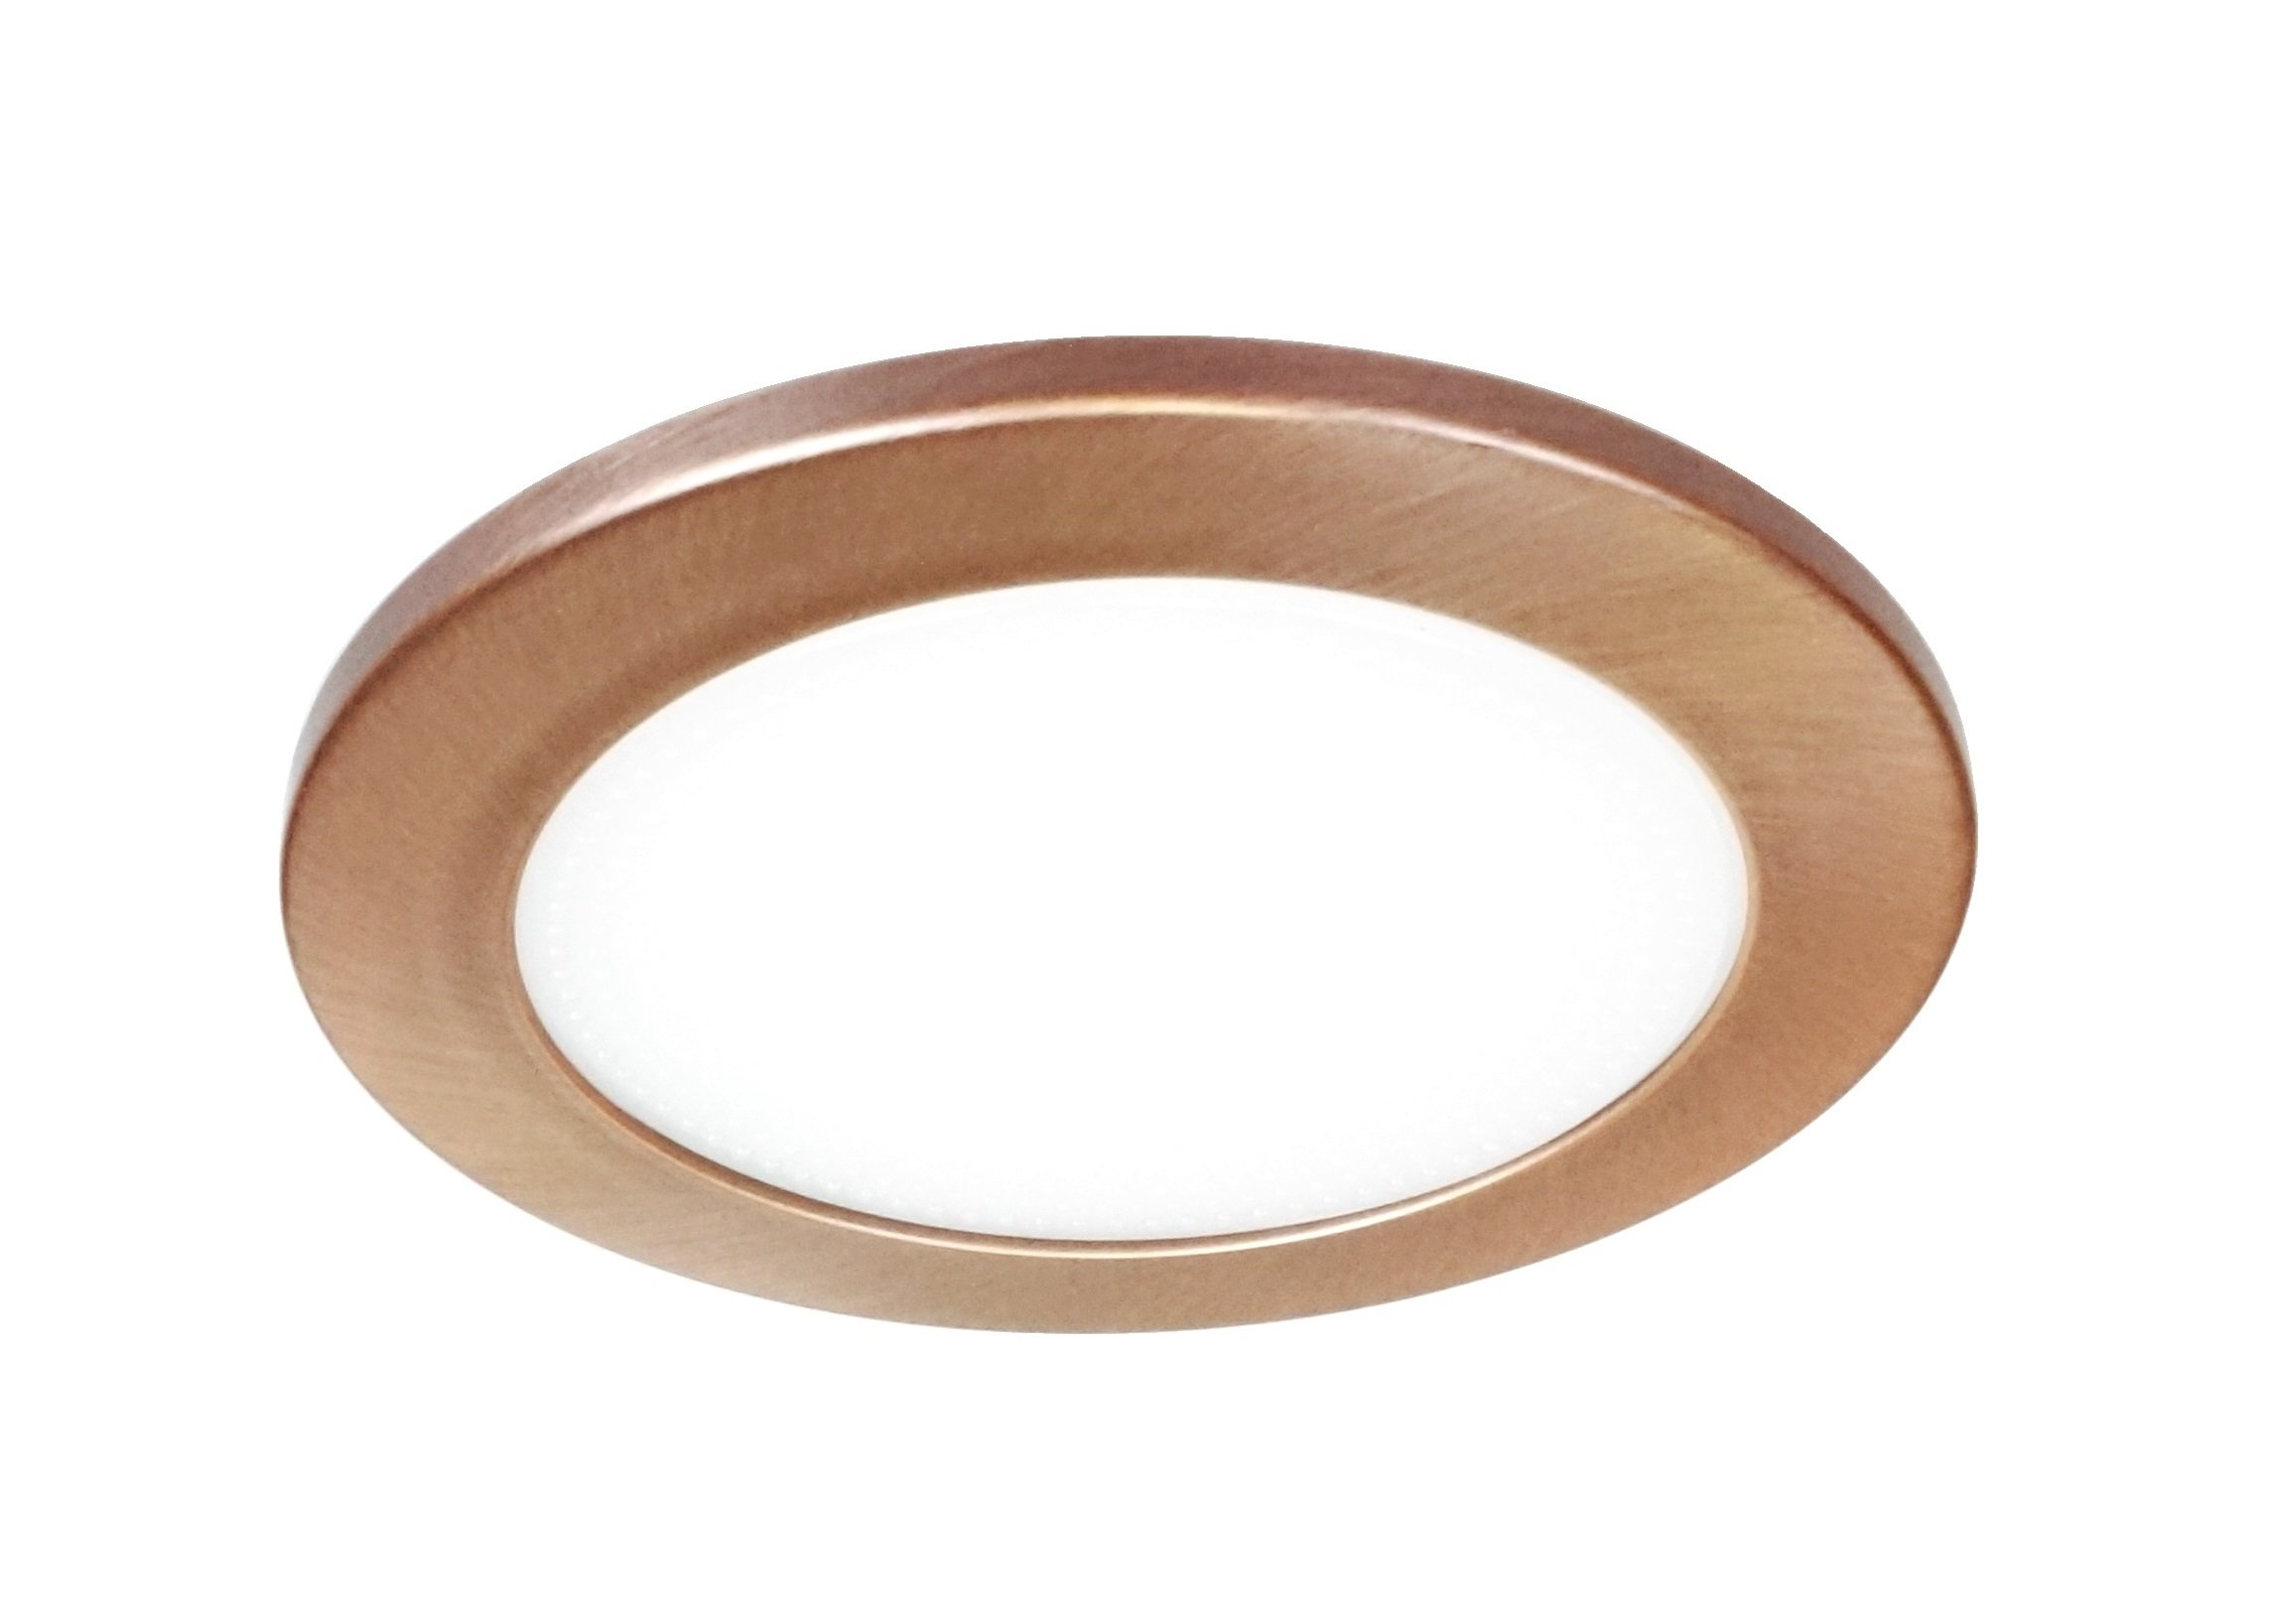 NICOR Lighting 4-inch Recessed Lighting Shower Trim with Albalite Lens, Bronze (19509BZ)